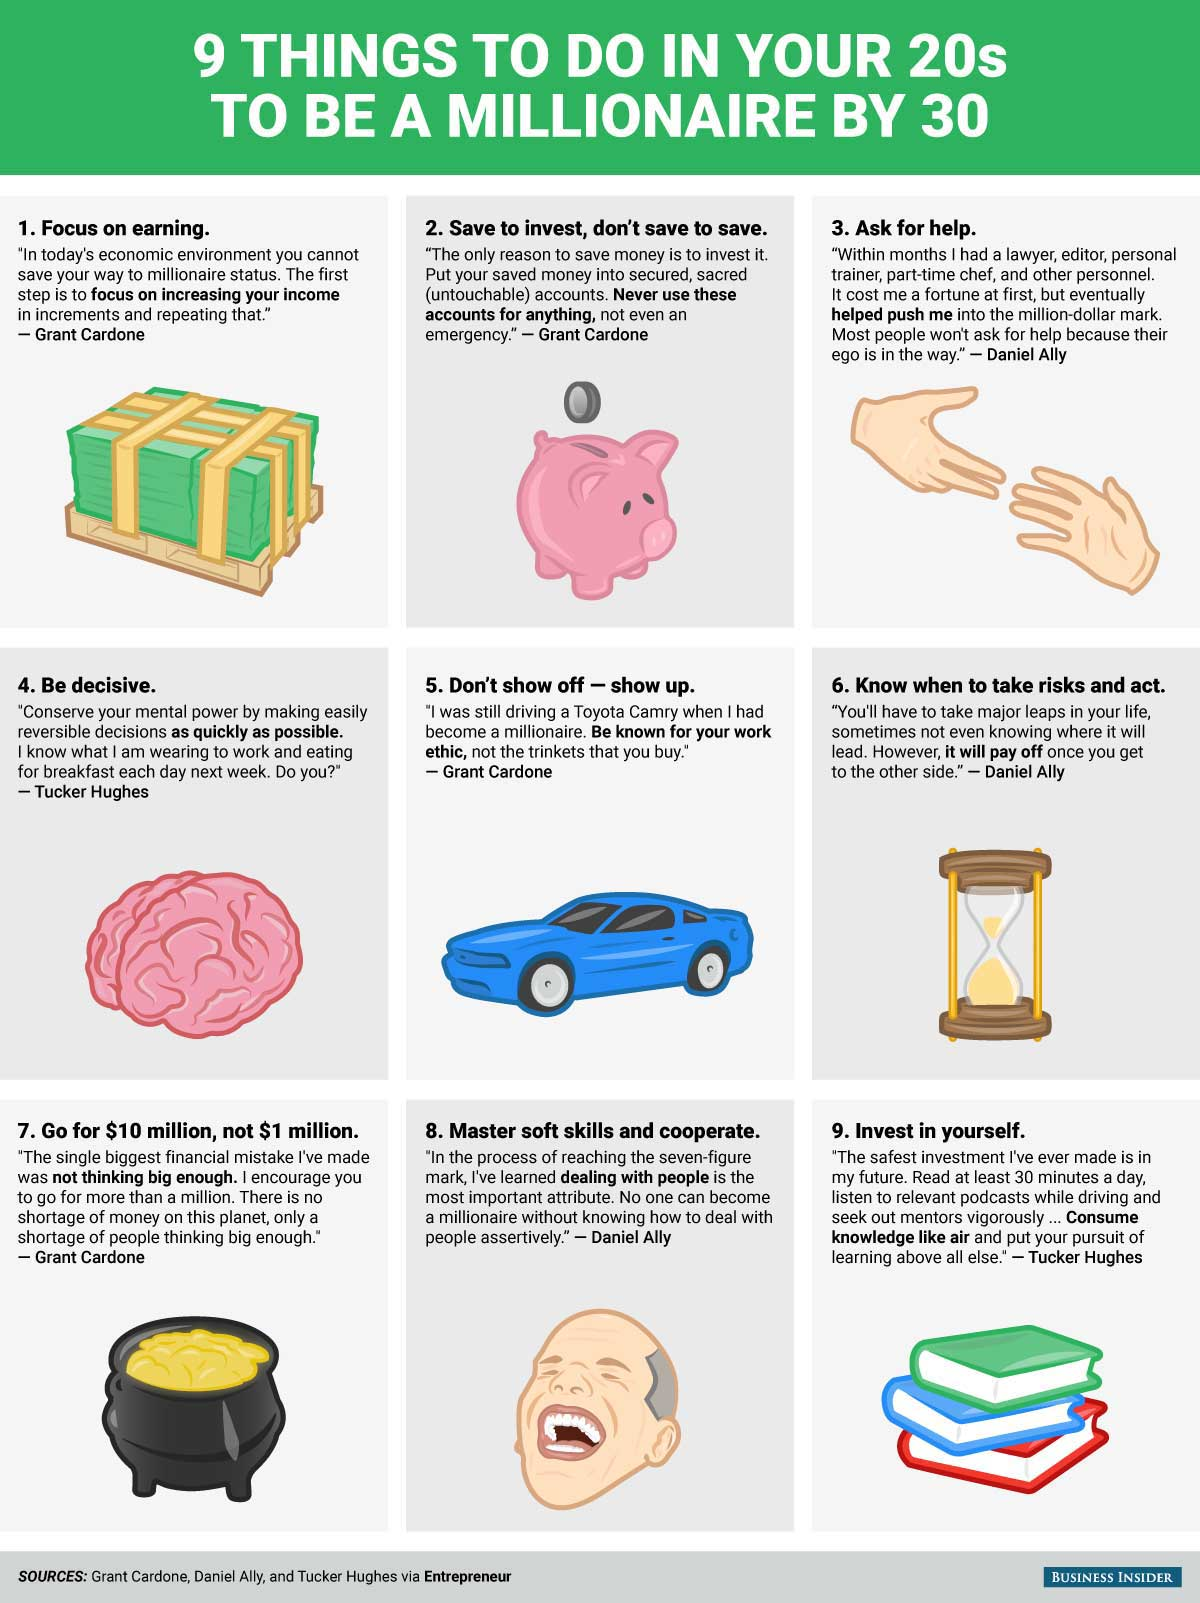 9 Things To Do In Your 20s To Be A Millionaire By 30